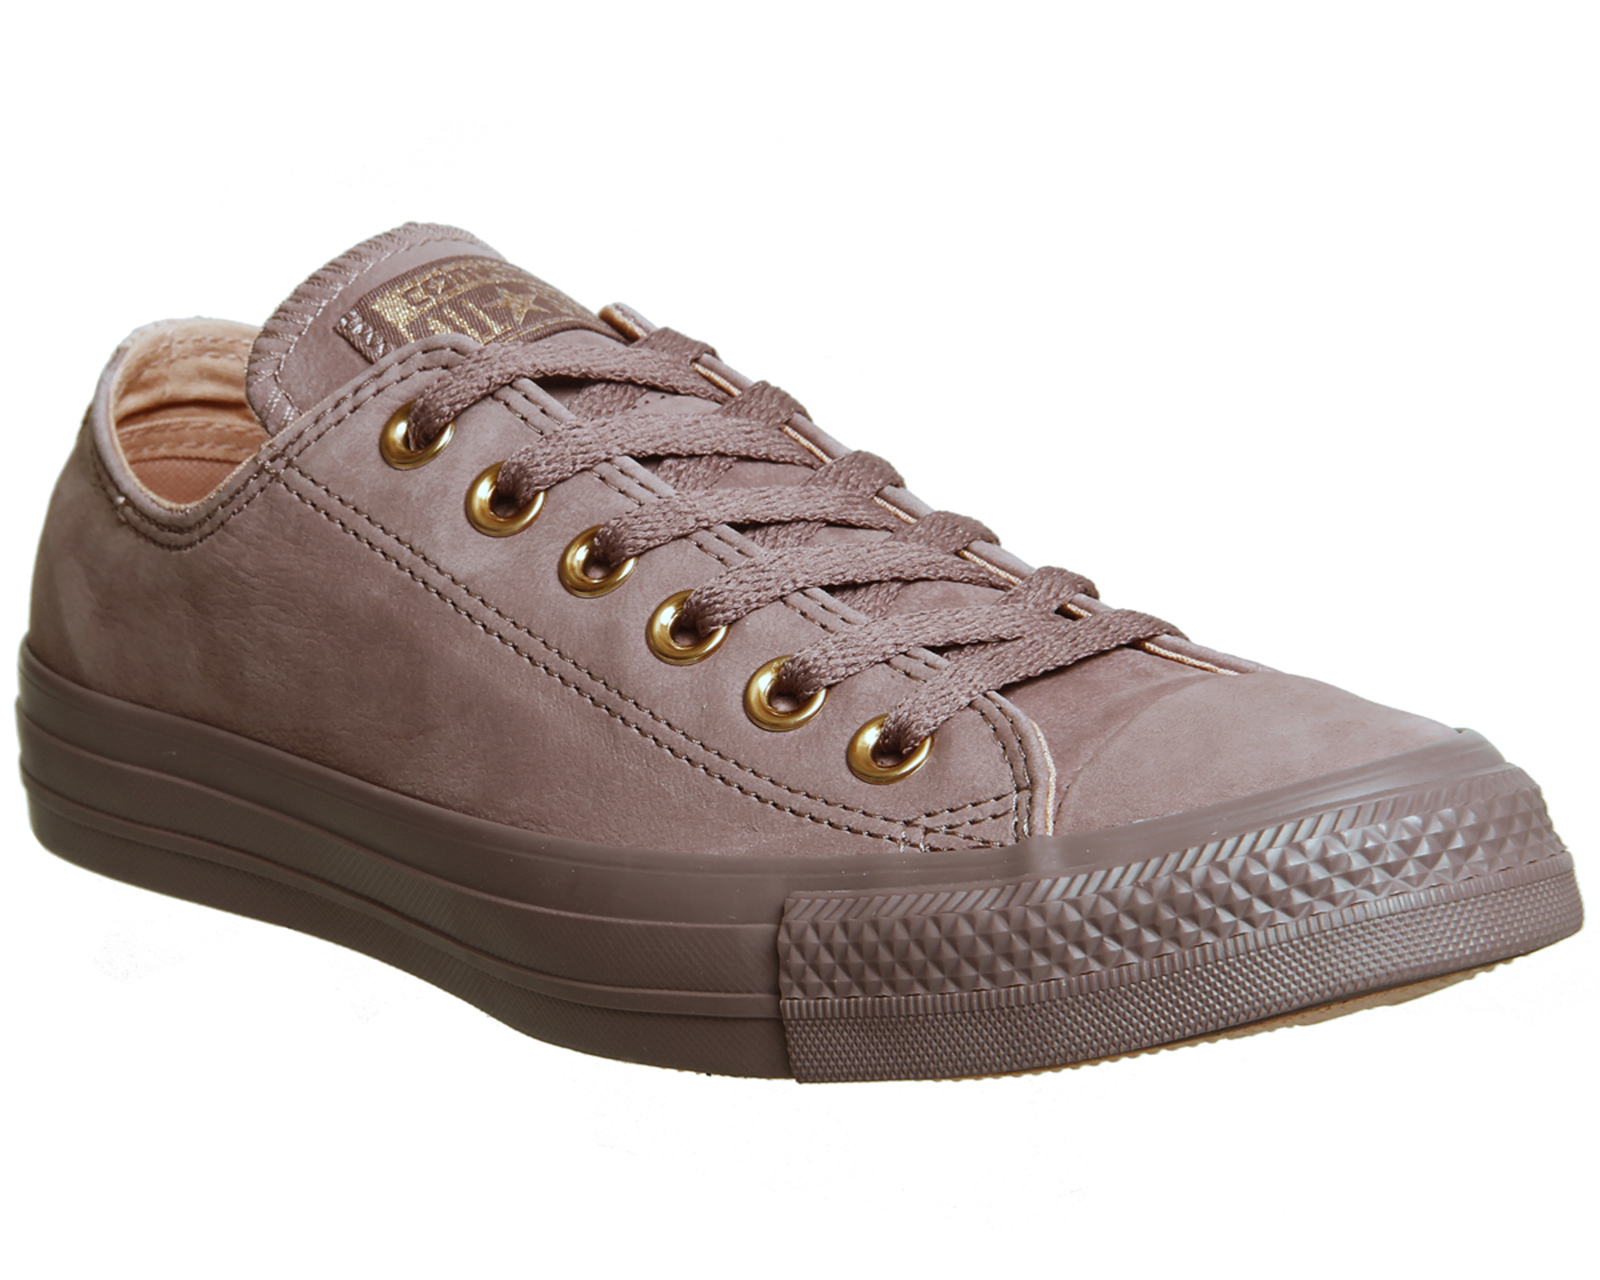 457e17e889a311 Sentinel Womens Converse All Star Low Leather Saddle Pale Coral Trainers  Shoes